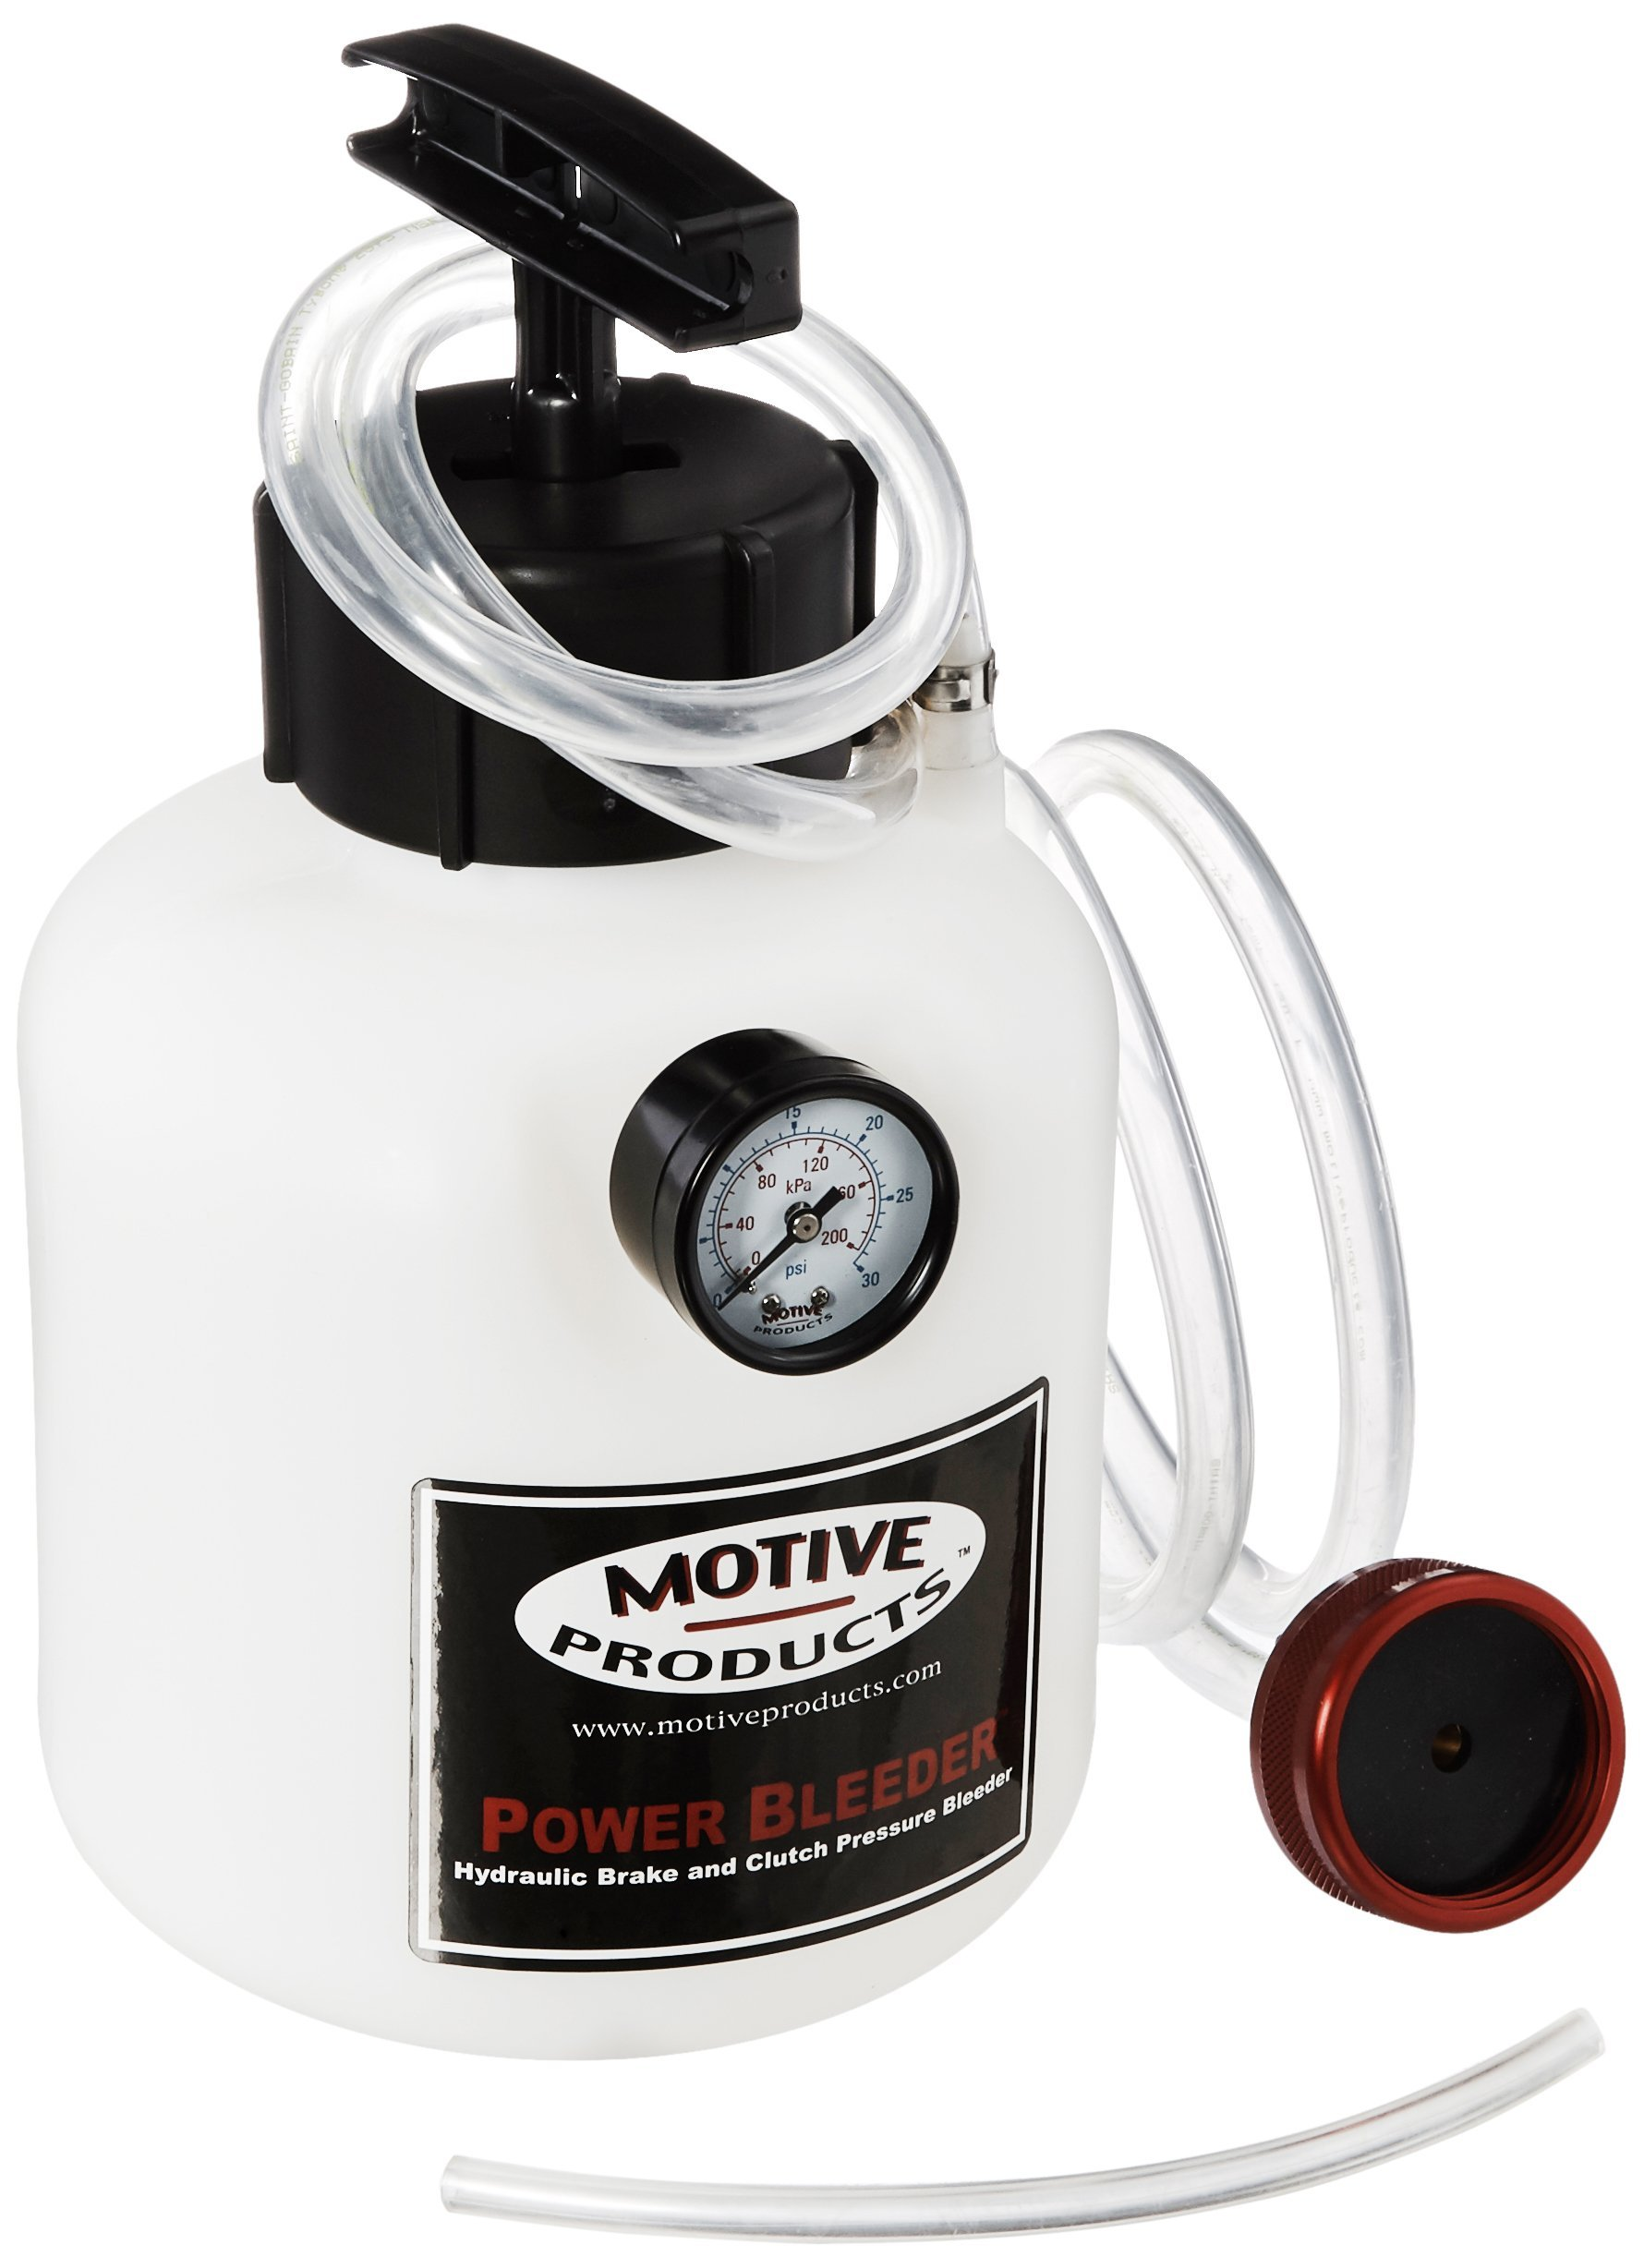 Motive Products Power Bleeder #0109 - European- Black Label